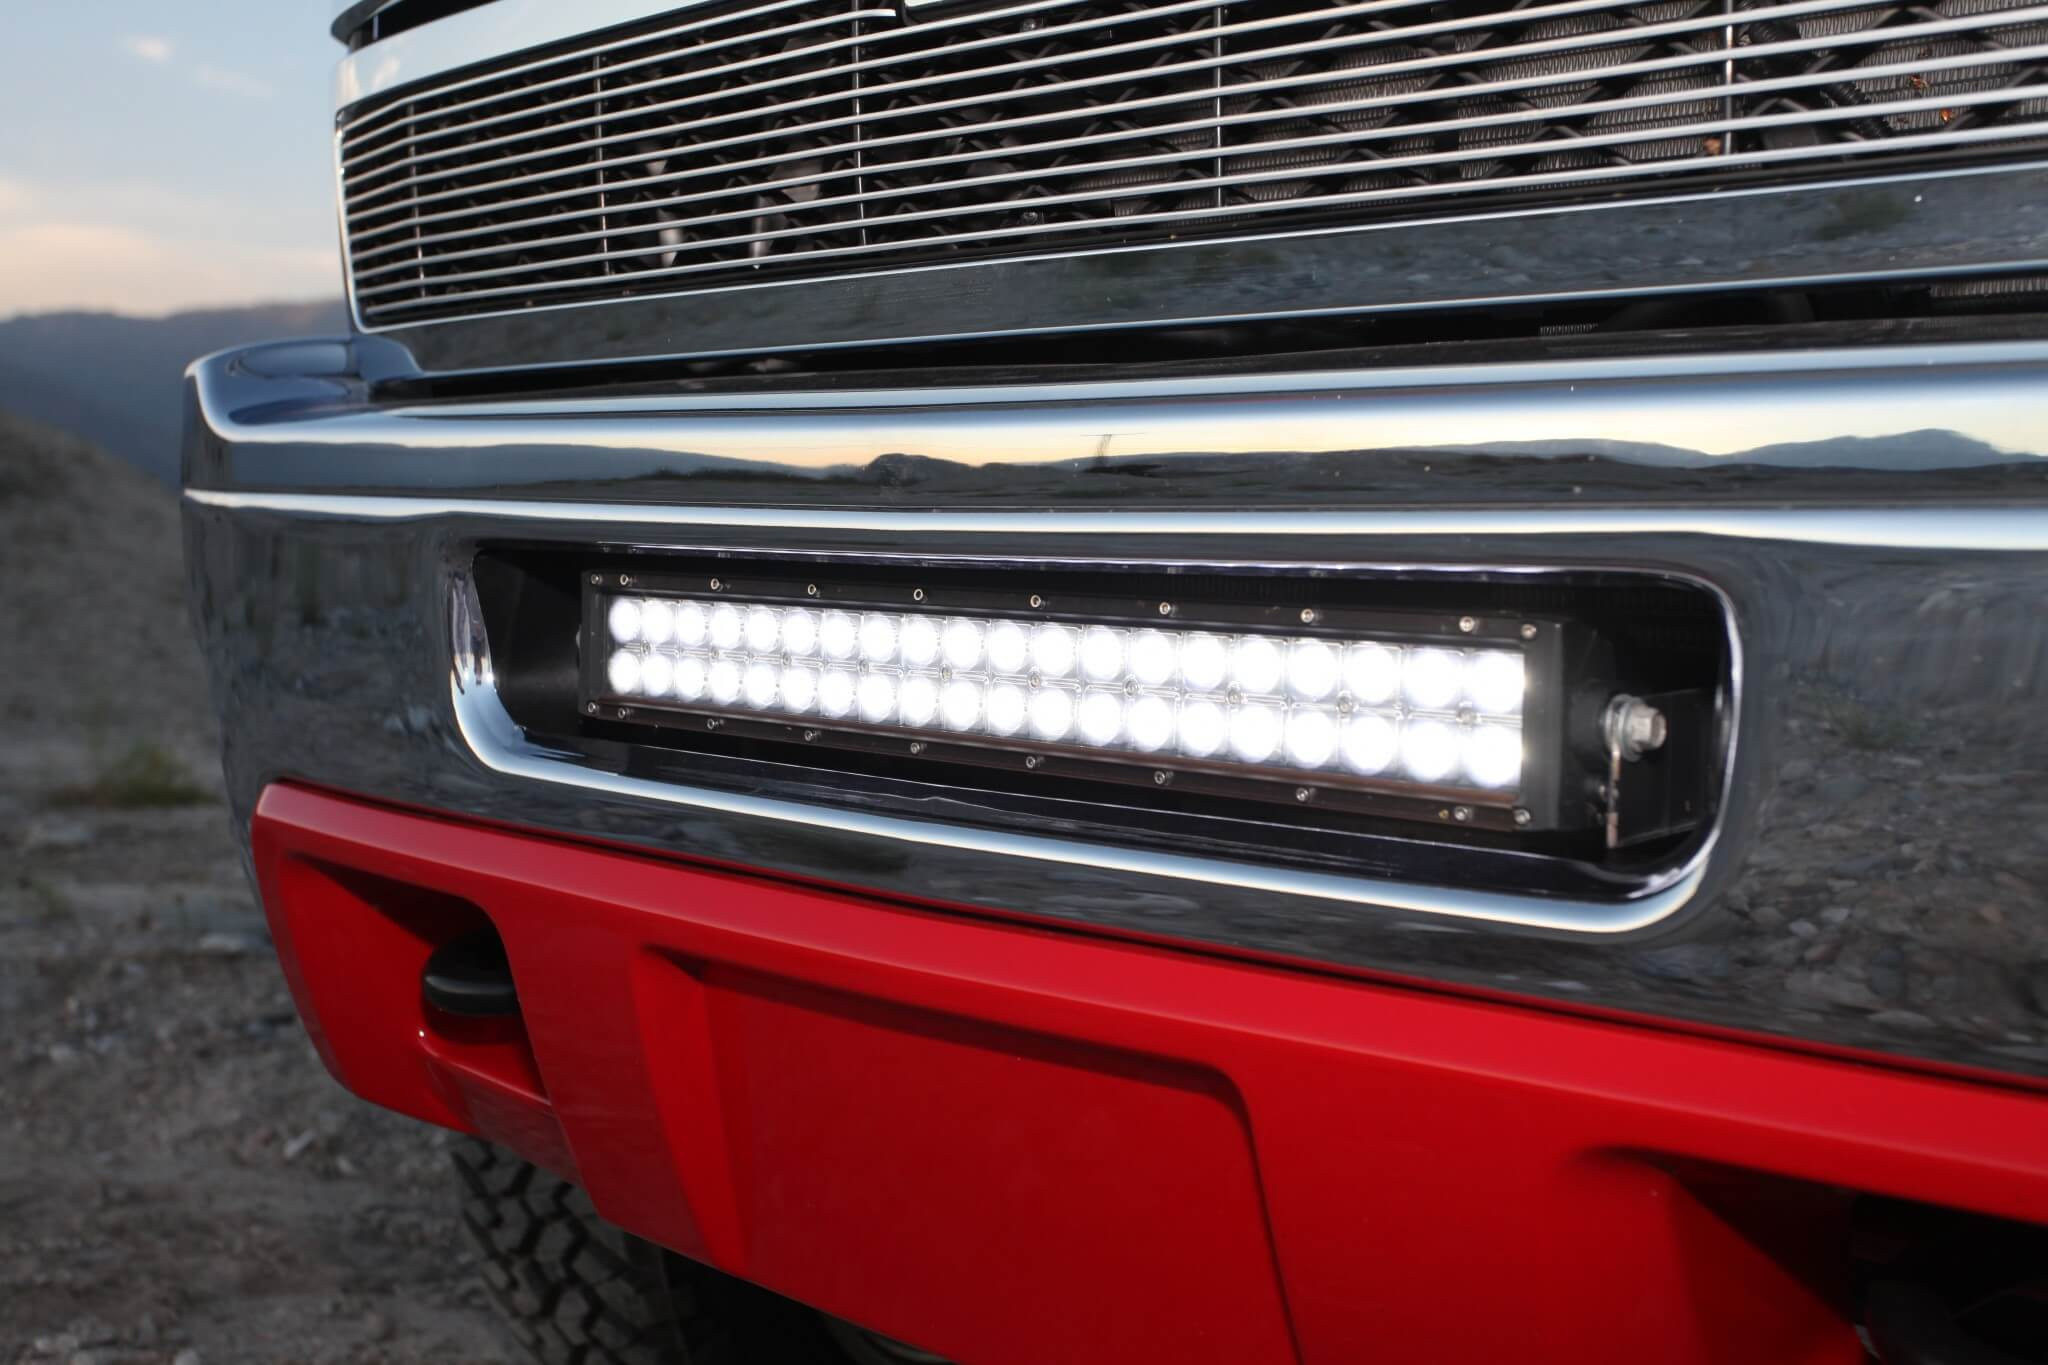 A Rigid LED light bar fits perfectly into the lower grille opening.